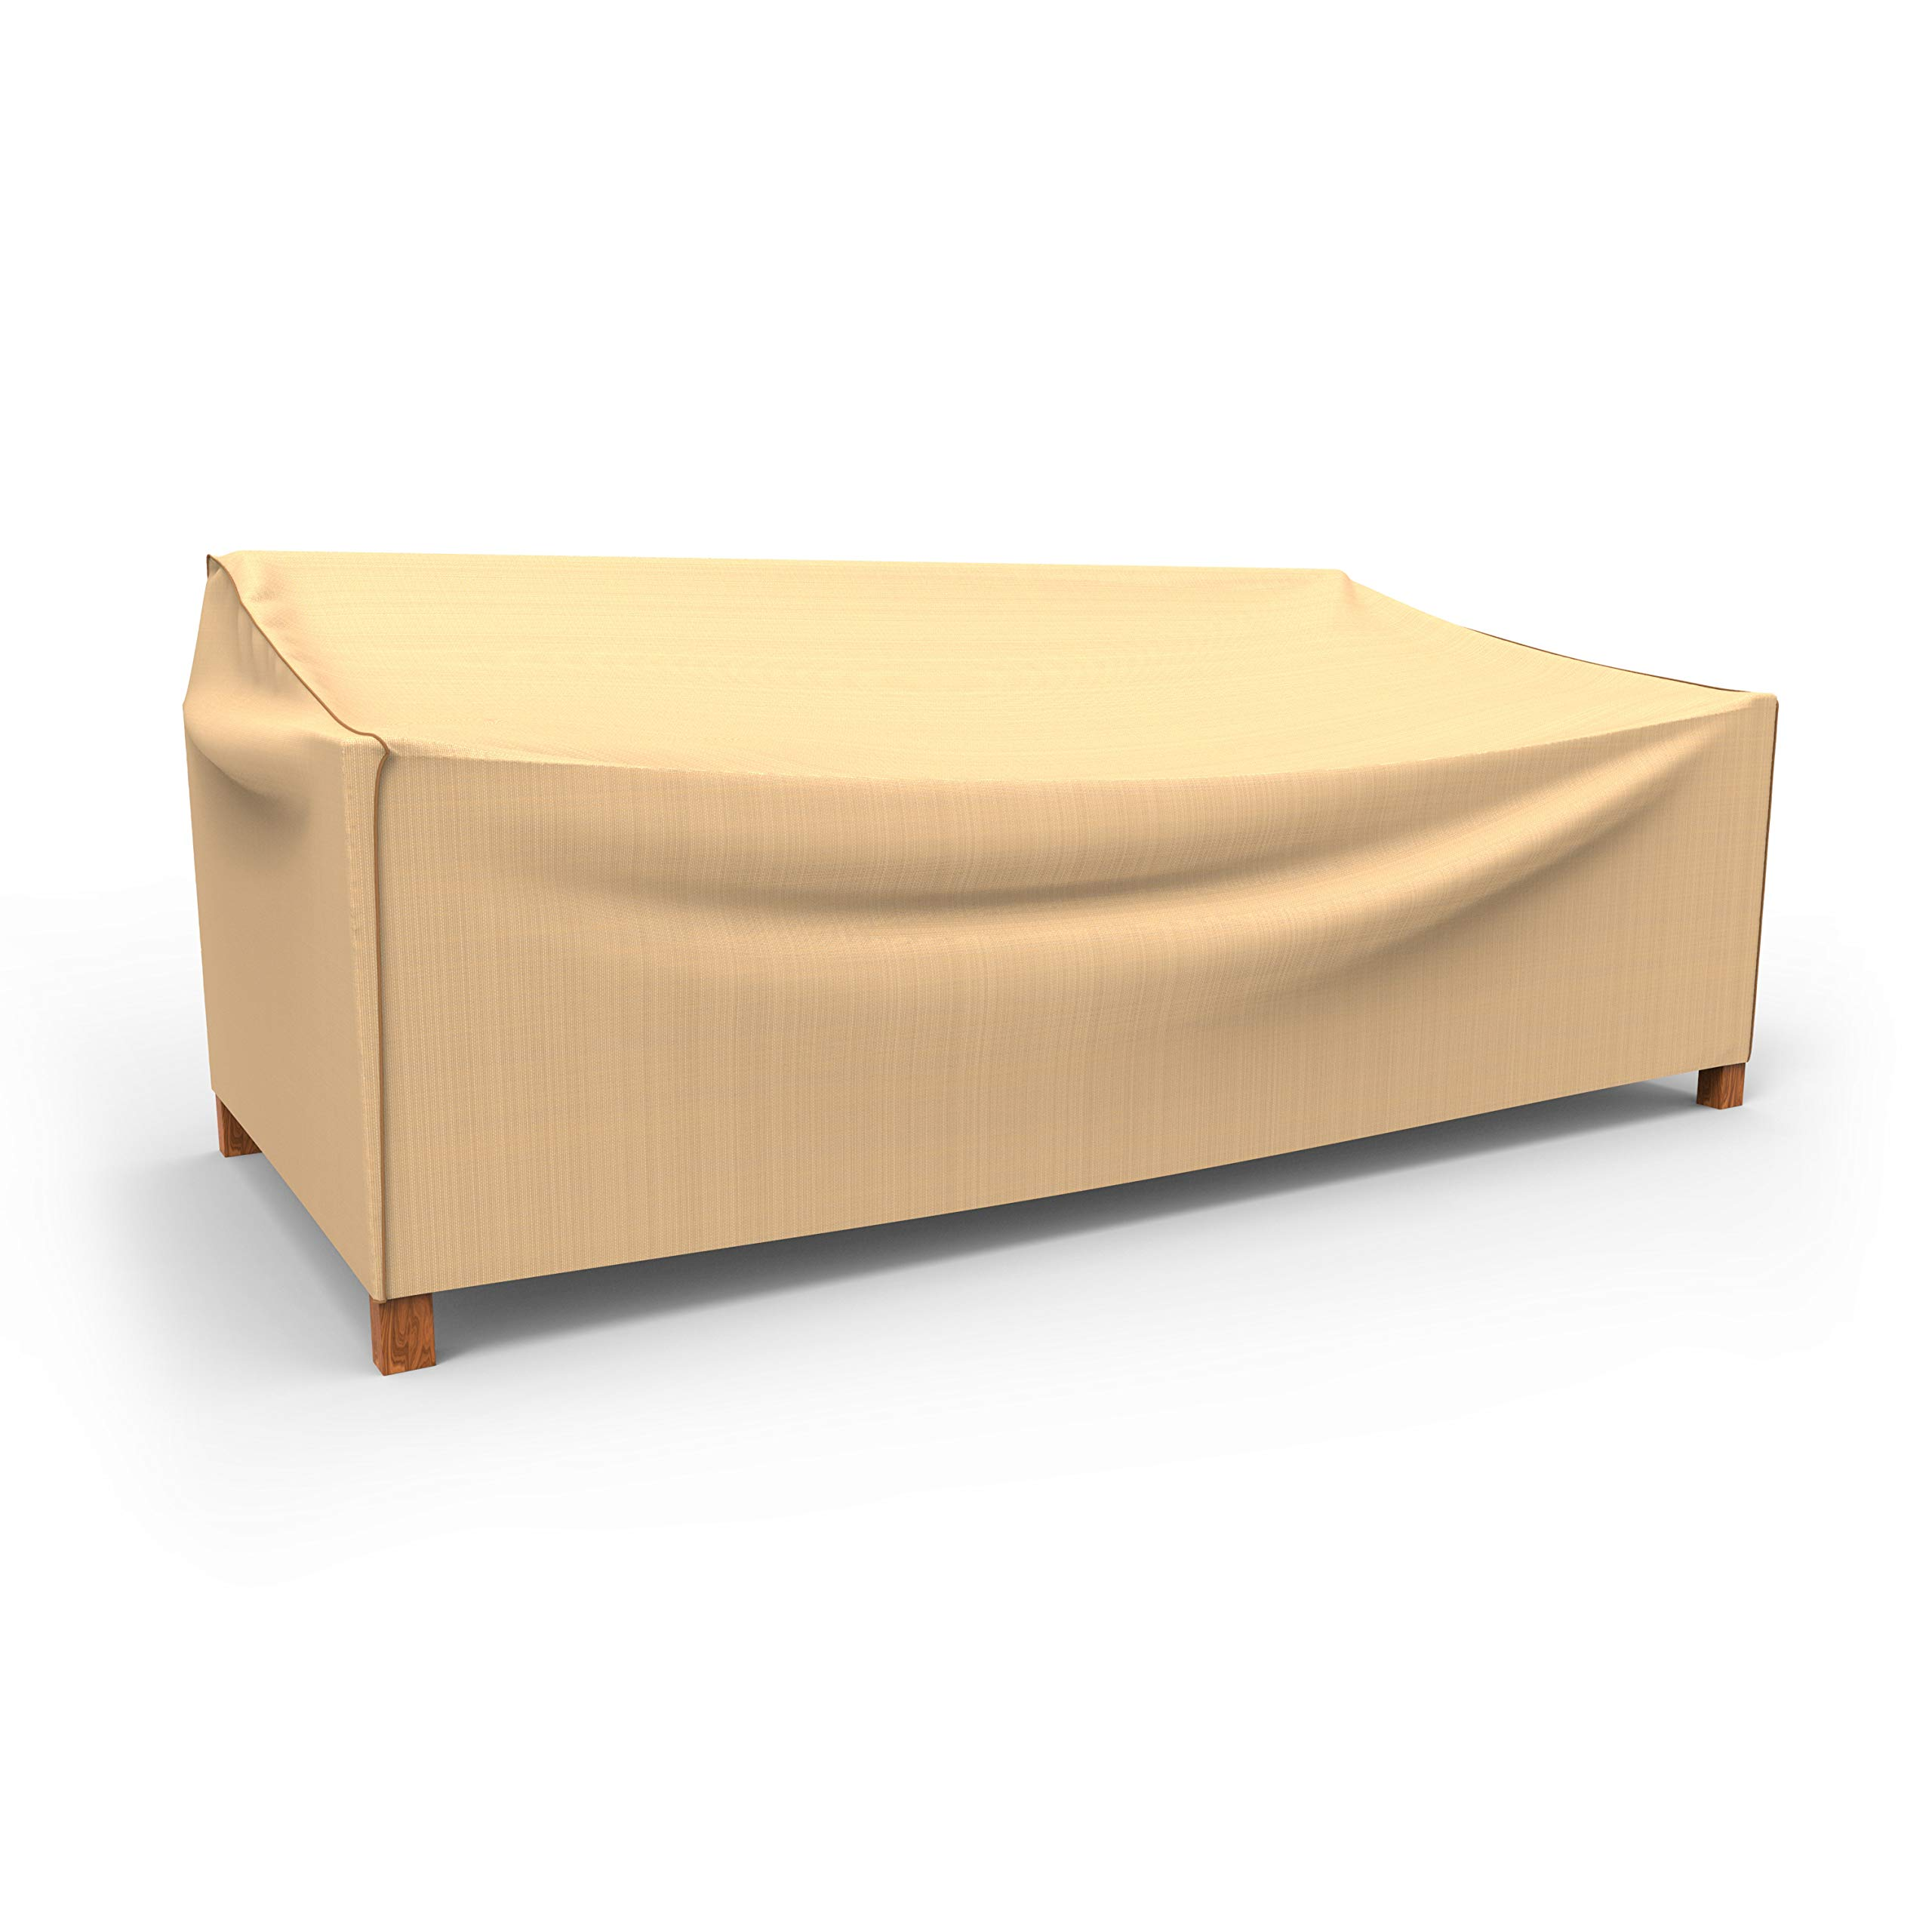 EmpireCovers NeverWet Signature Outdoor Patio Sofa Cover, Extra Extra Large - Tan, P3A02TNNW2